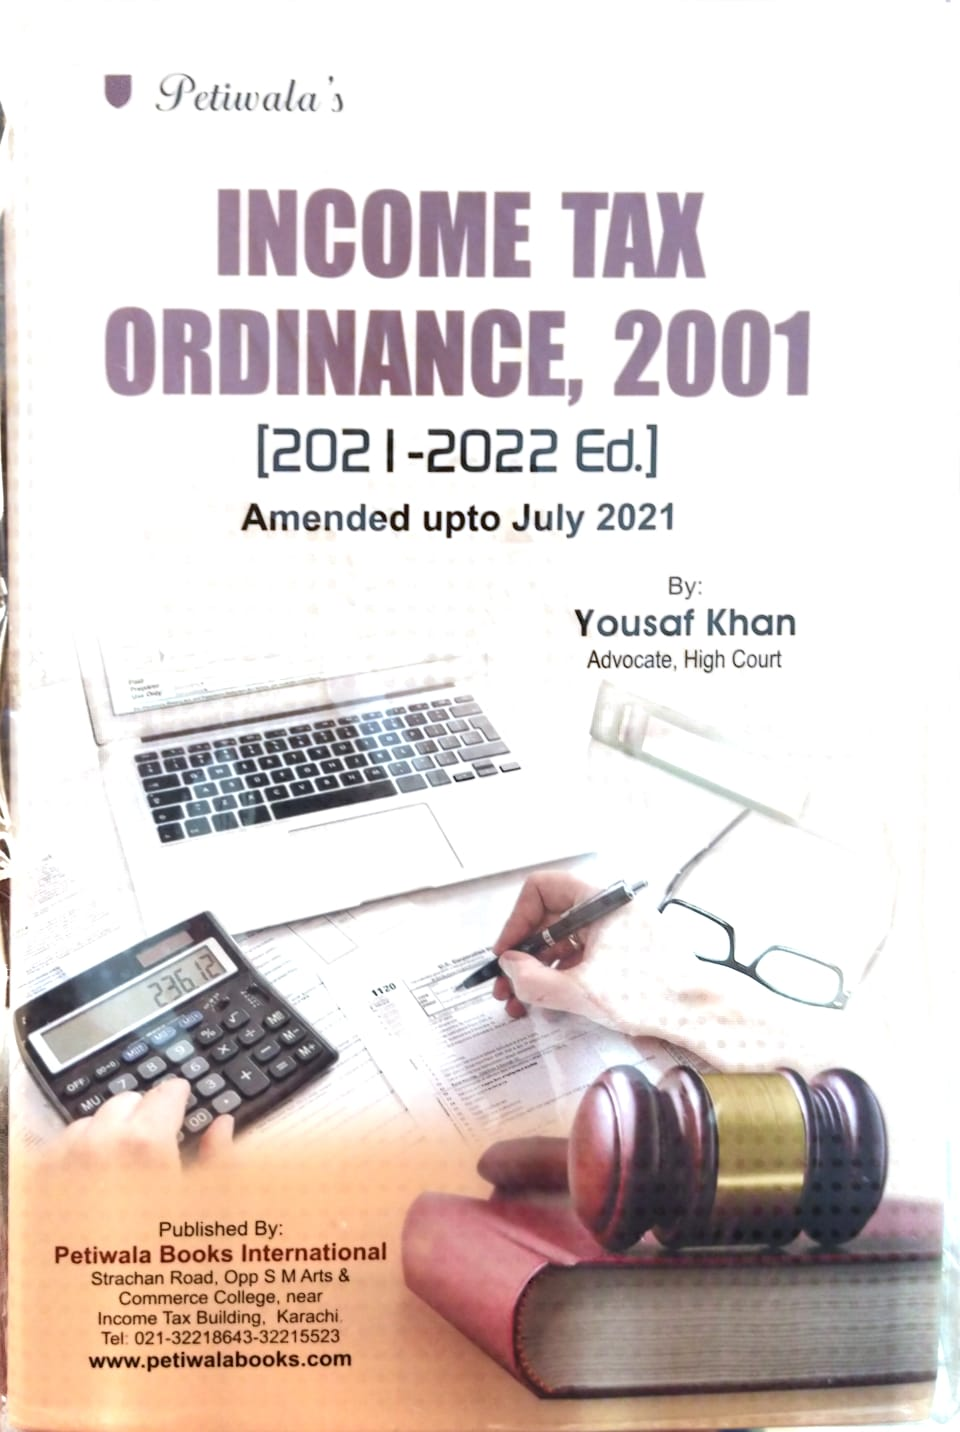 Income Tax Ordinance, 2001 Amended upto July 2021